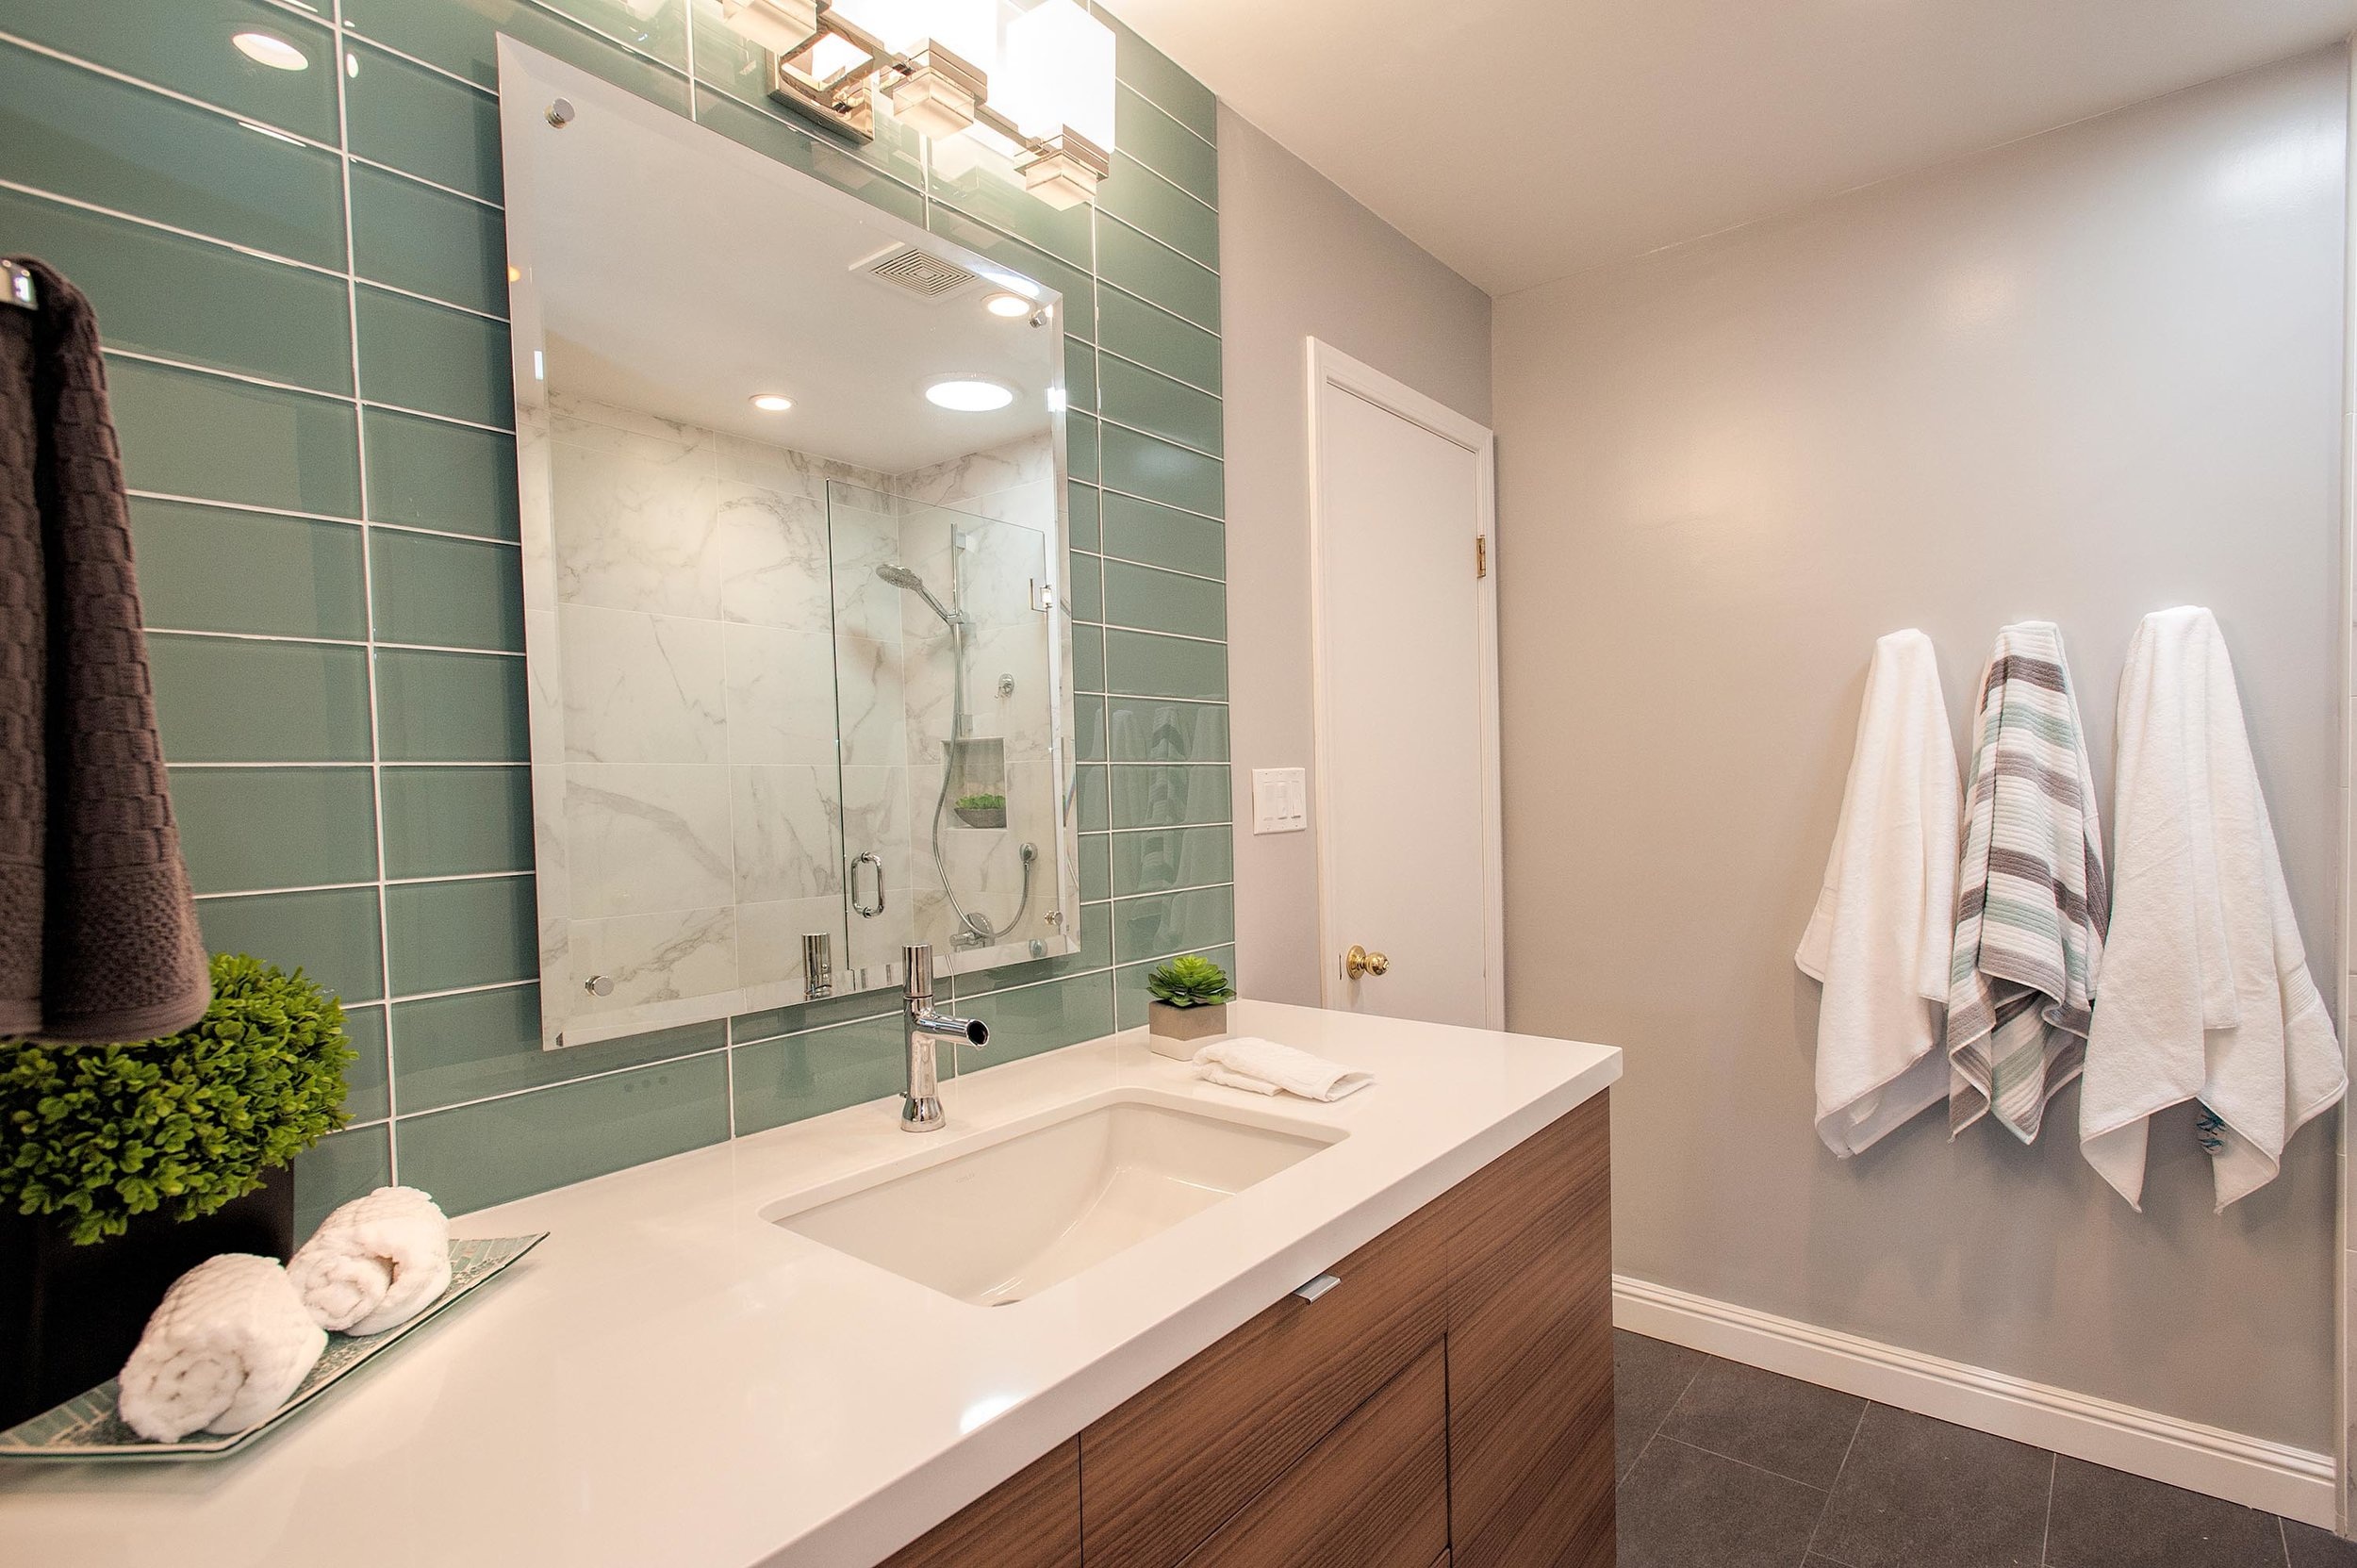 Bathroom with mirror and a faucet